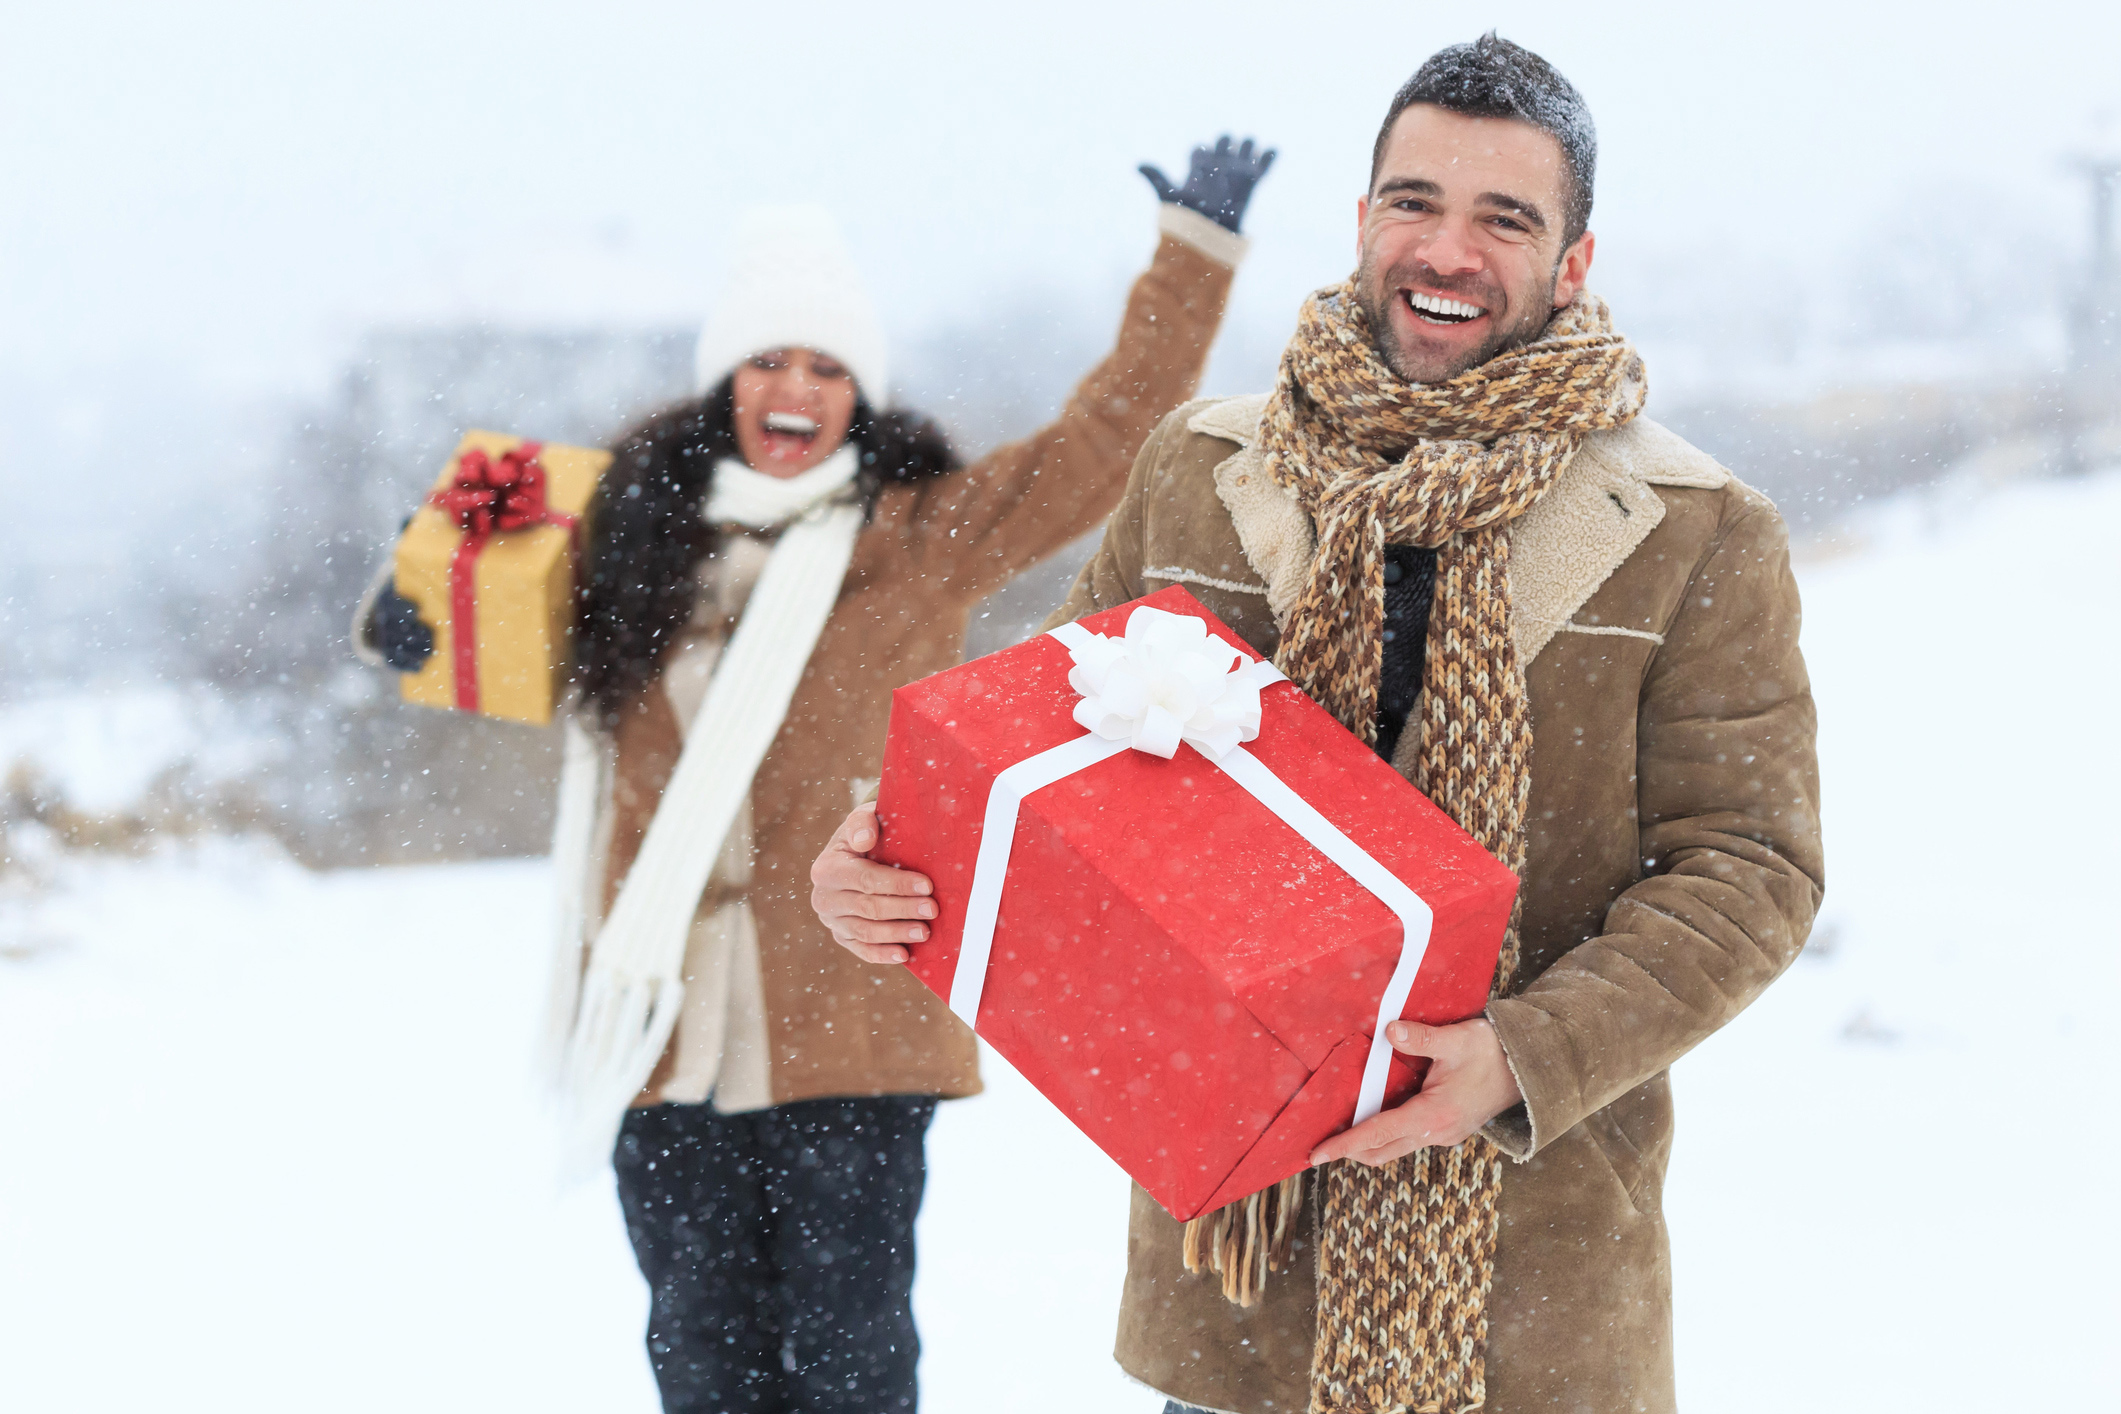 Cheerful man and woman carrying presents in snow